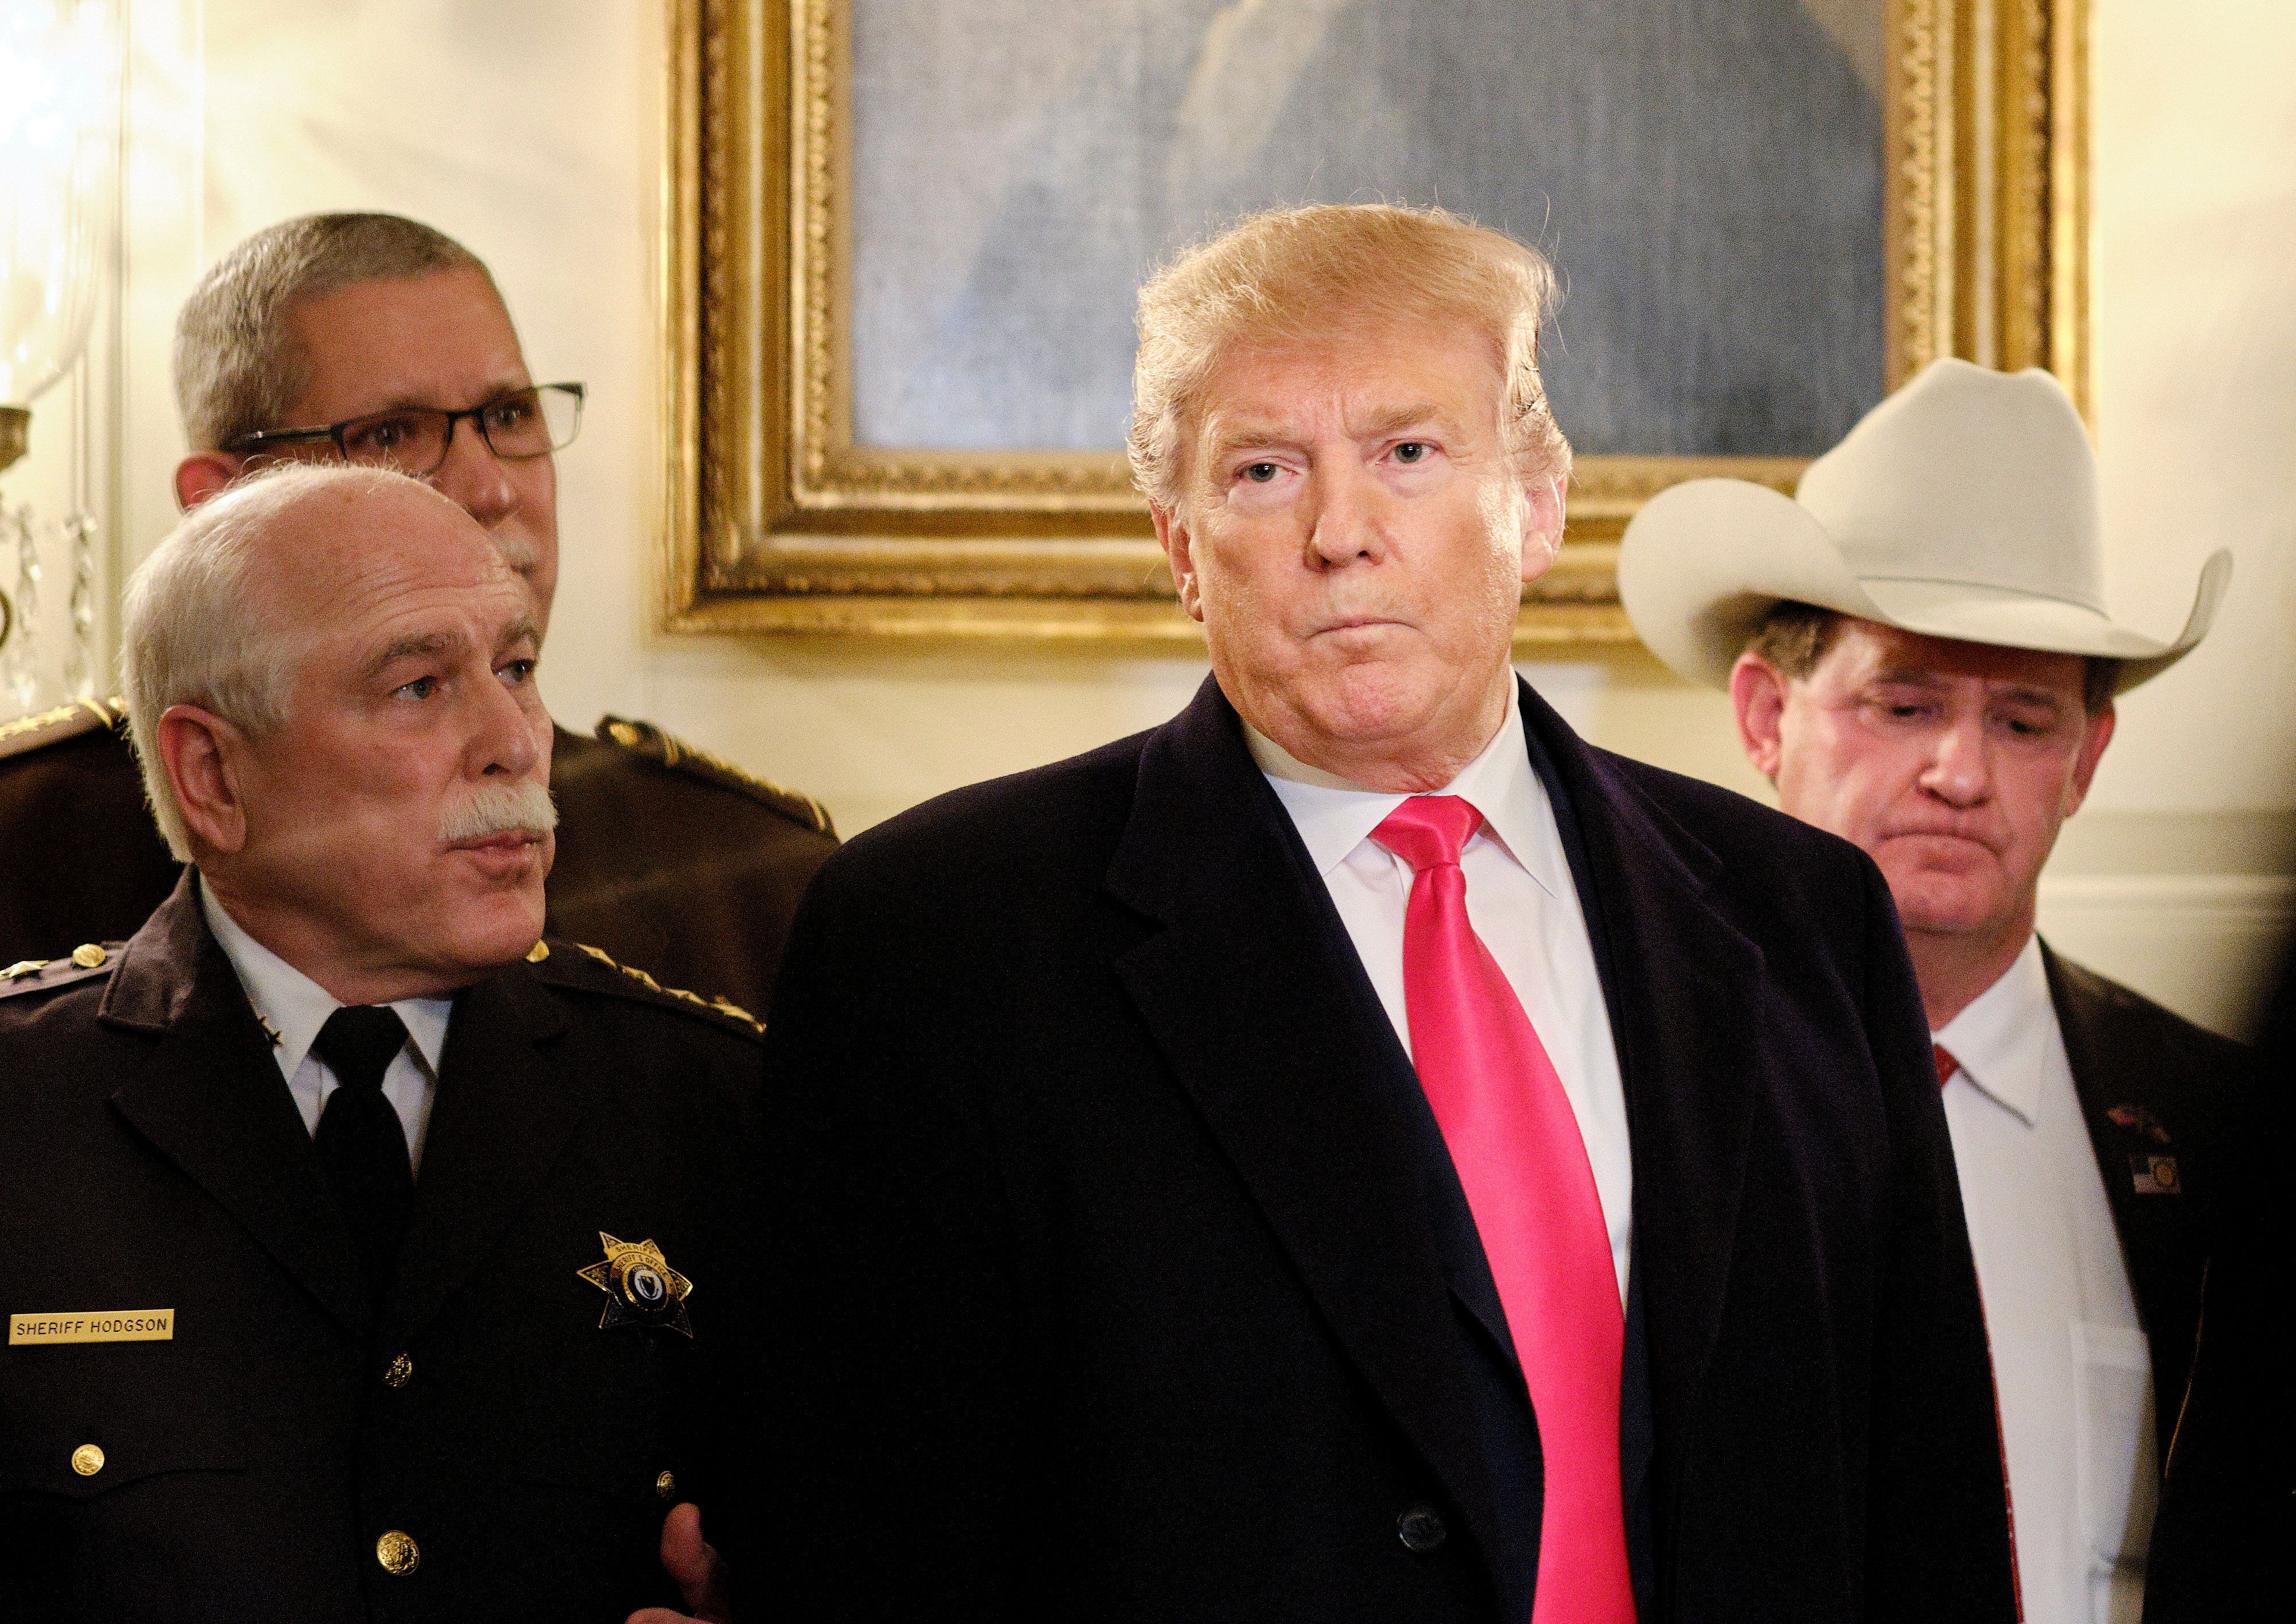 WASHINGTON, DC - FEBRUARY 11: (AFP-OUT) U.S. President Donald Trump speaks to the press after meeting with sheriffs from across the country in the Diplomatic Reception Room at the White House February 11, 2019 in Washington, D.C. Trump will be departing for a rally later tonight in El Paso, Texas. (Photo by T.J. Kirkpatrick-Pool/Getty Images)